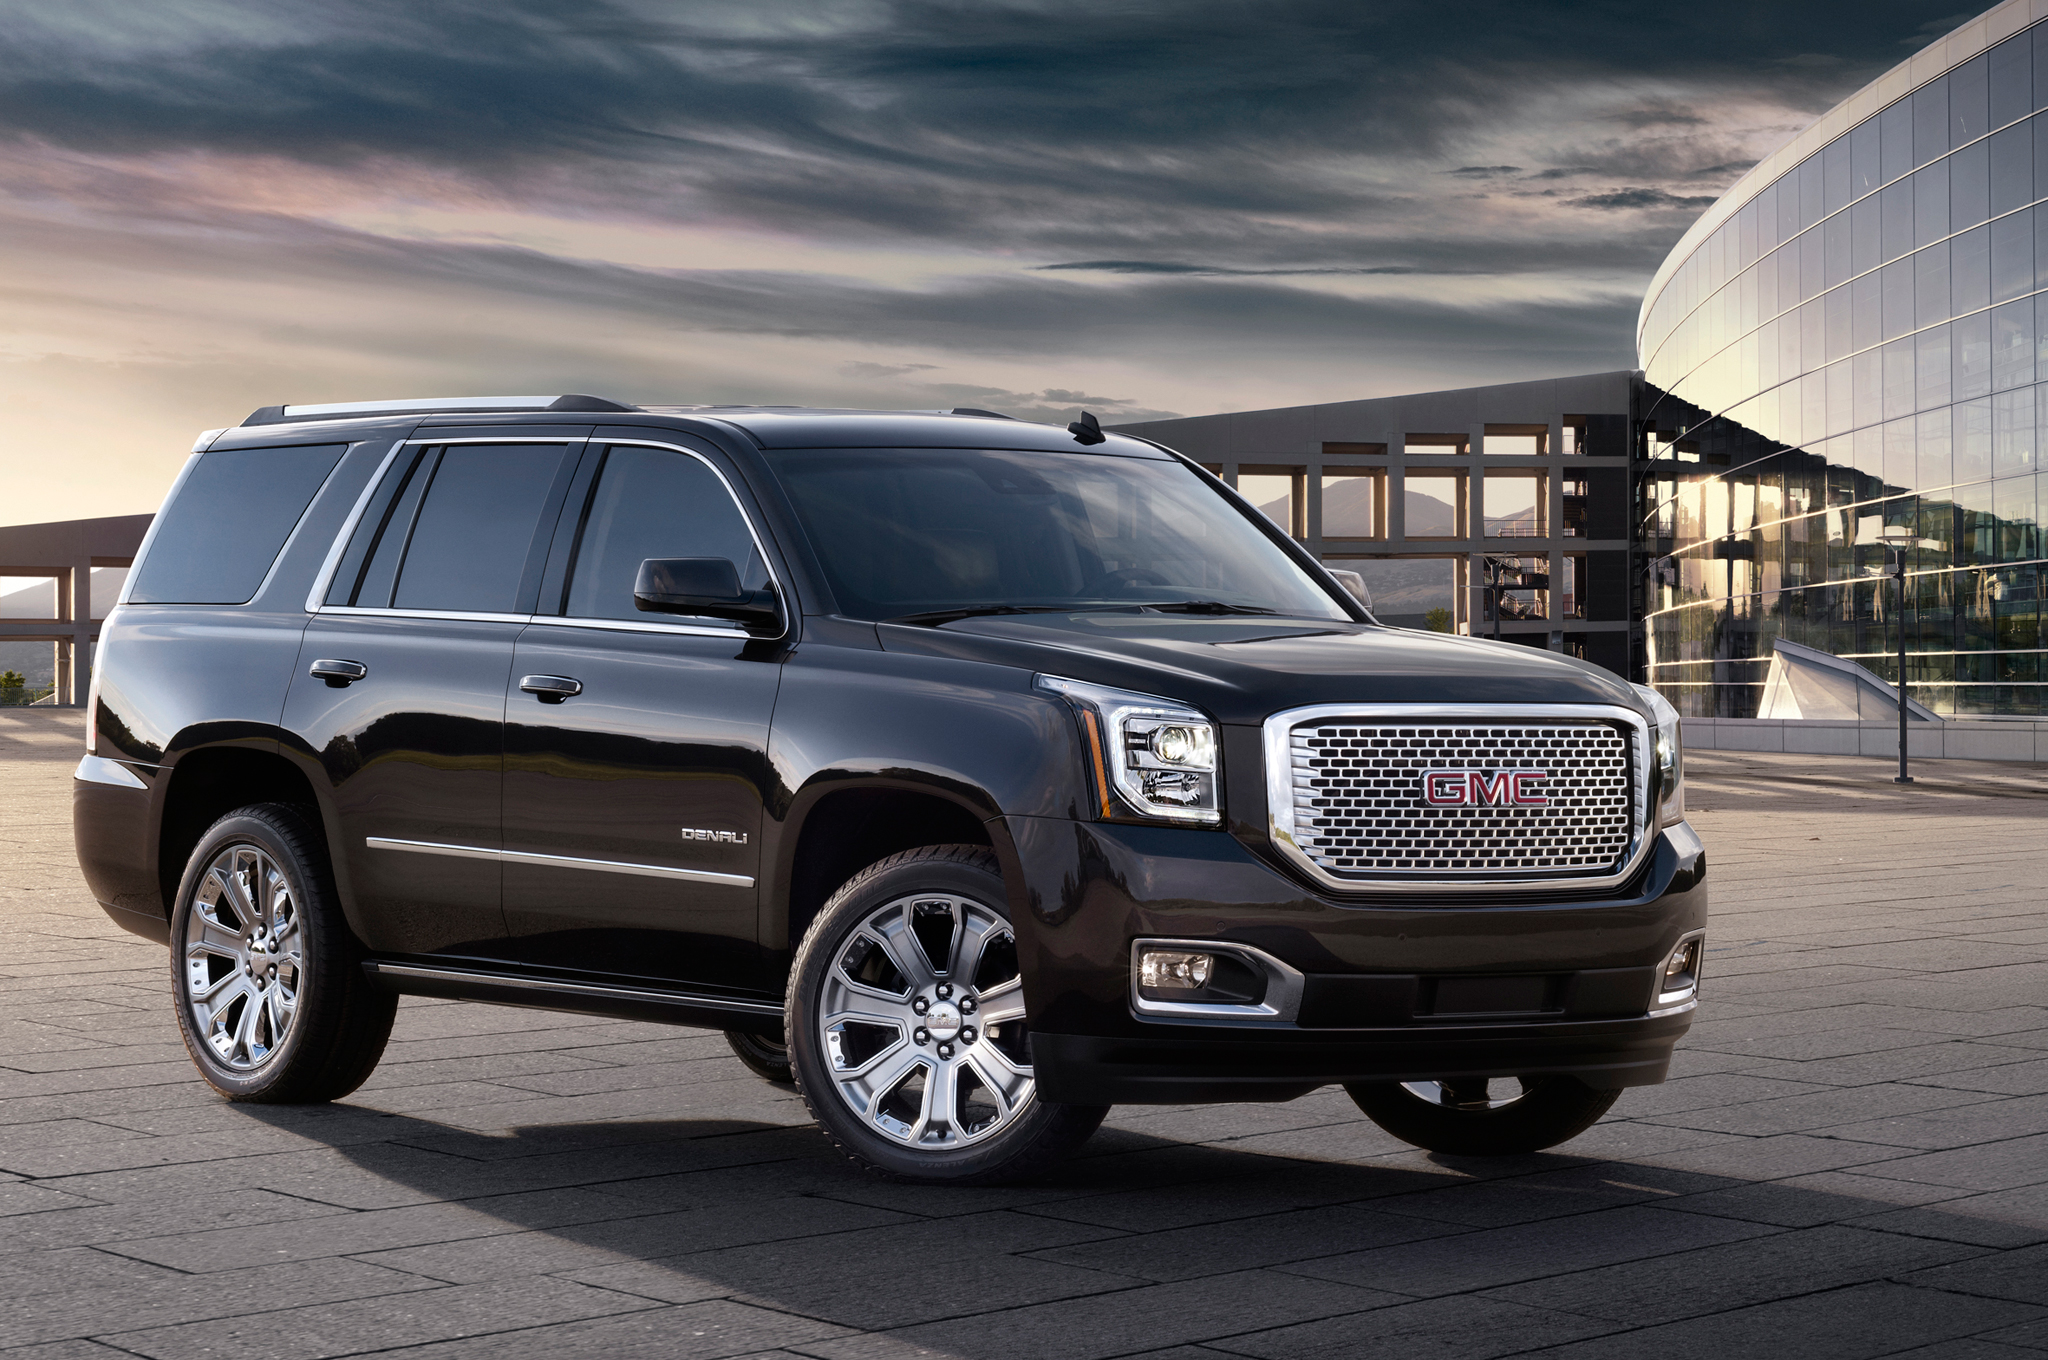 2015 GMC Yukon Denali MPGs Improve Thanks to Eight-Speed Auto